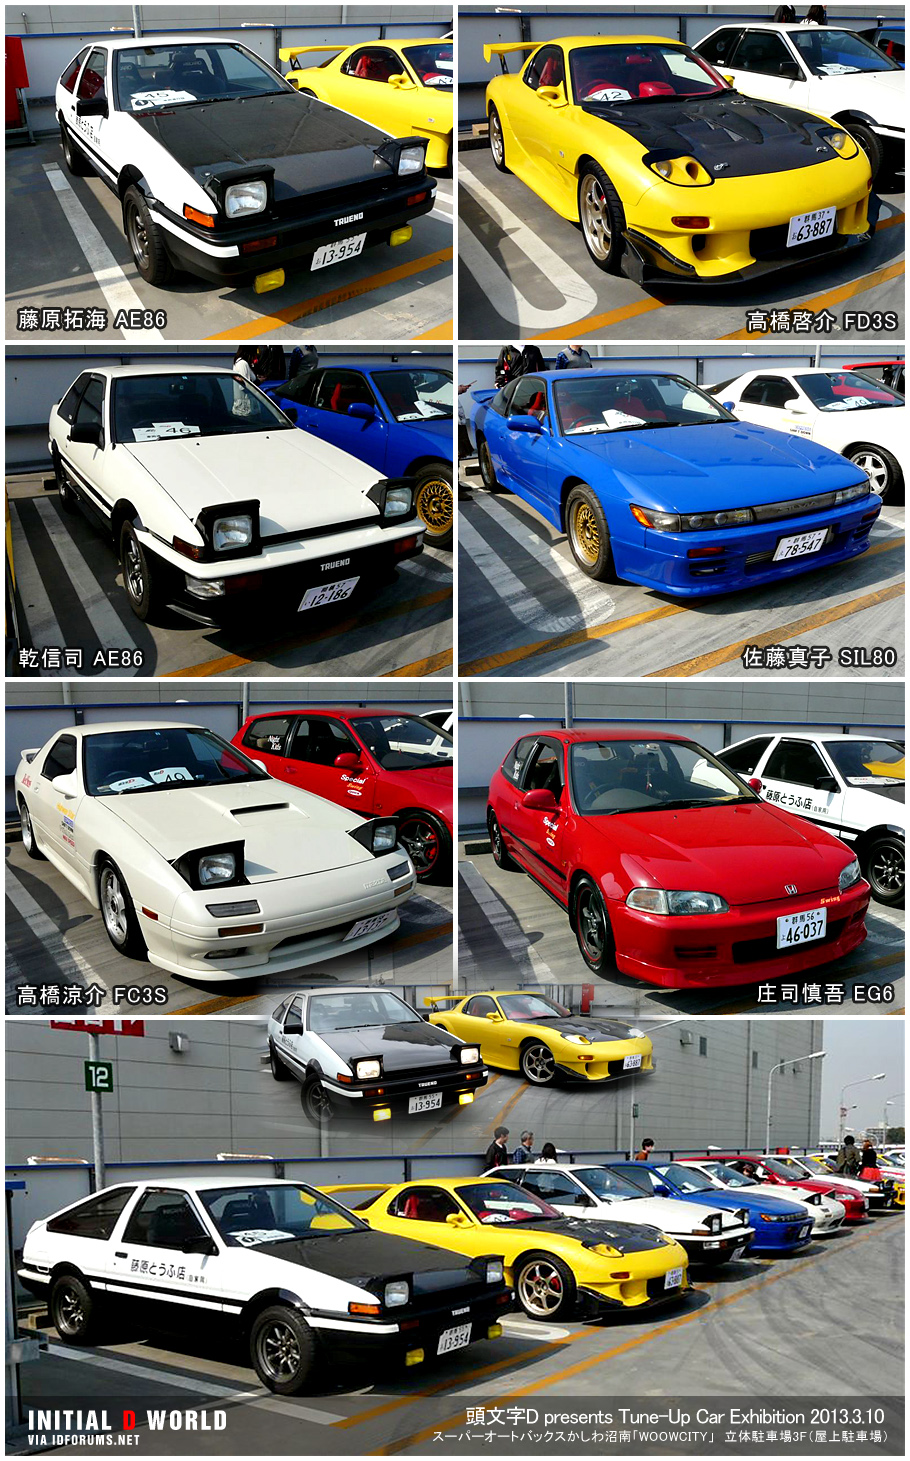 initial d world   discussion board forums   gt d